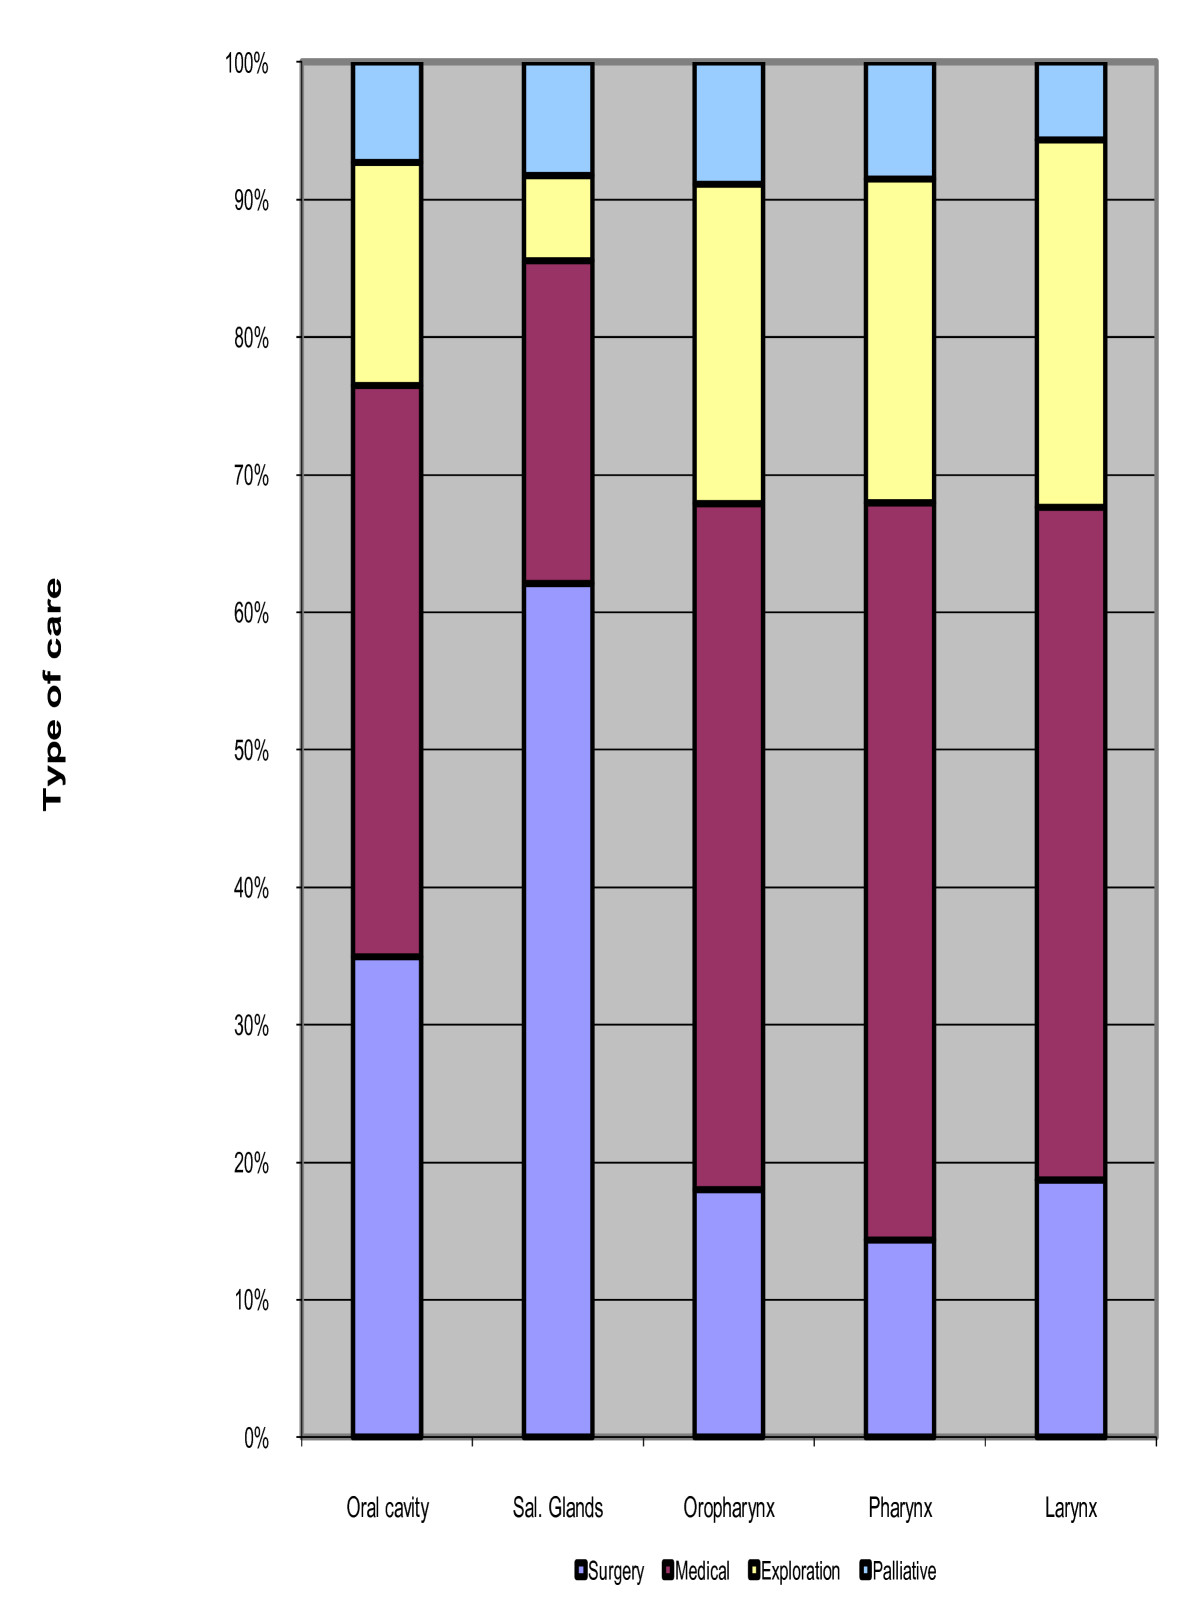 Head and neck cancers in France: an analysis of the hospital